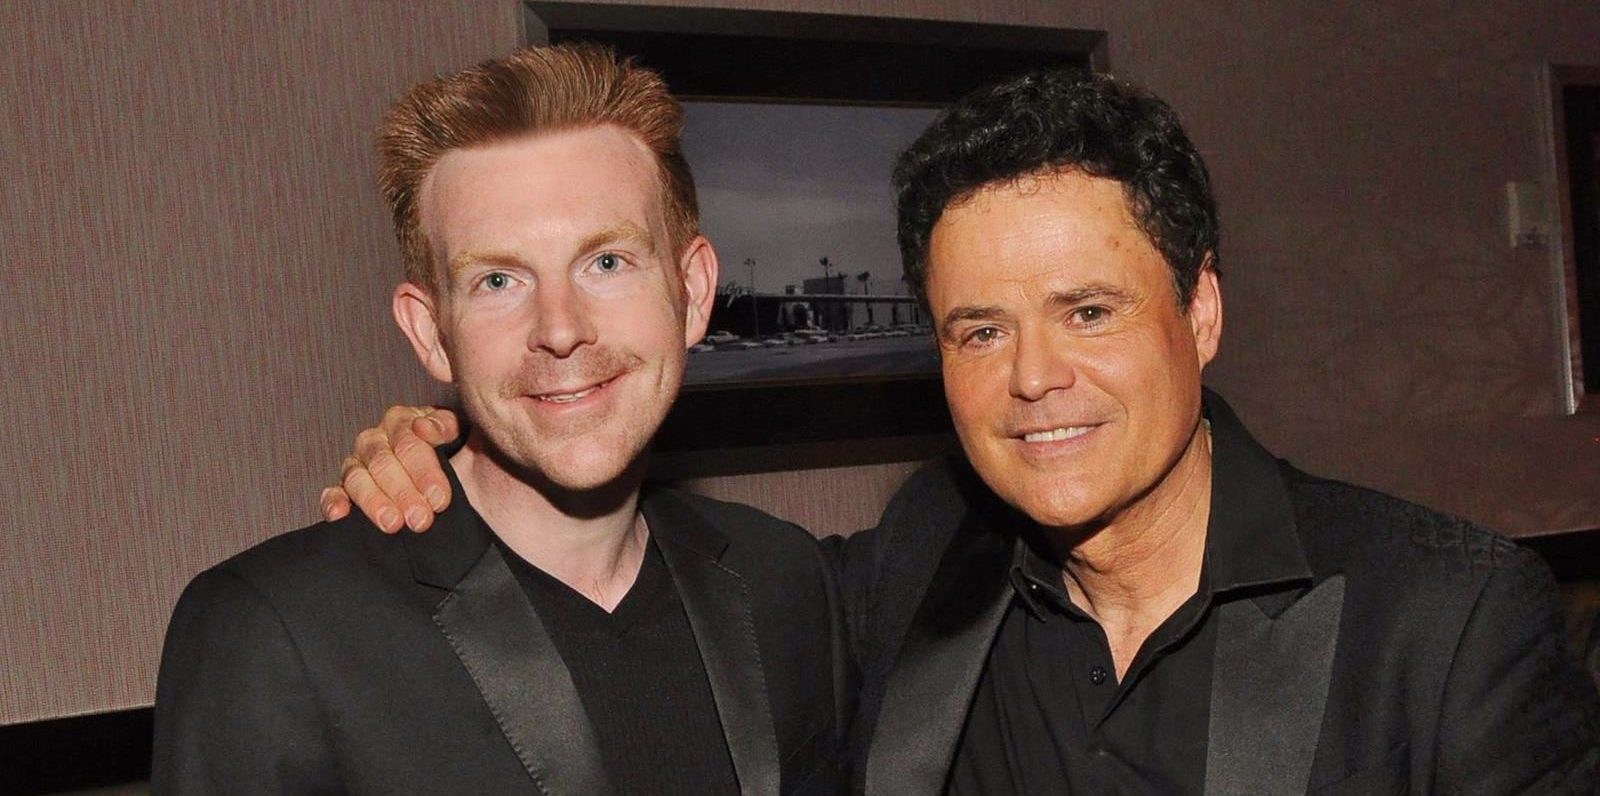 Enjoy Celebrity Radio's Donny Osmond NEW Las Vegas Interview…. Donny Osmond is arguably one of the biggest Stars in international musical history. He's certainly one […]